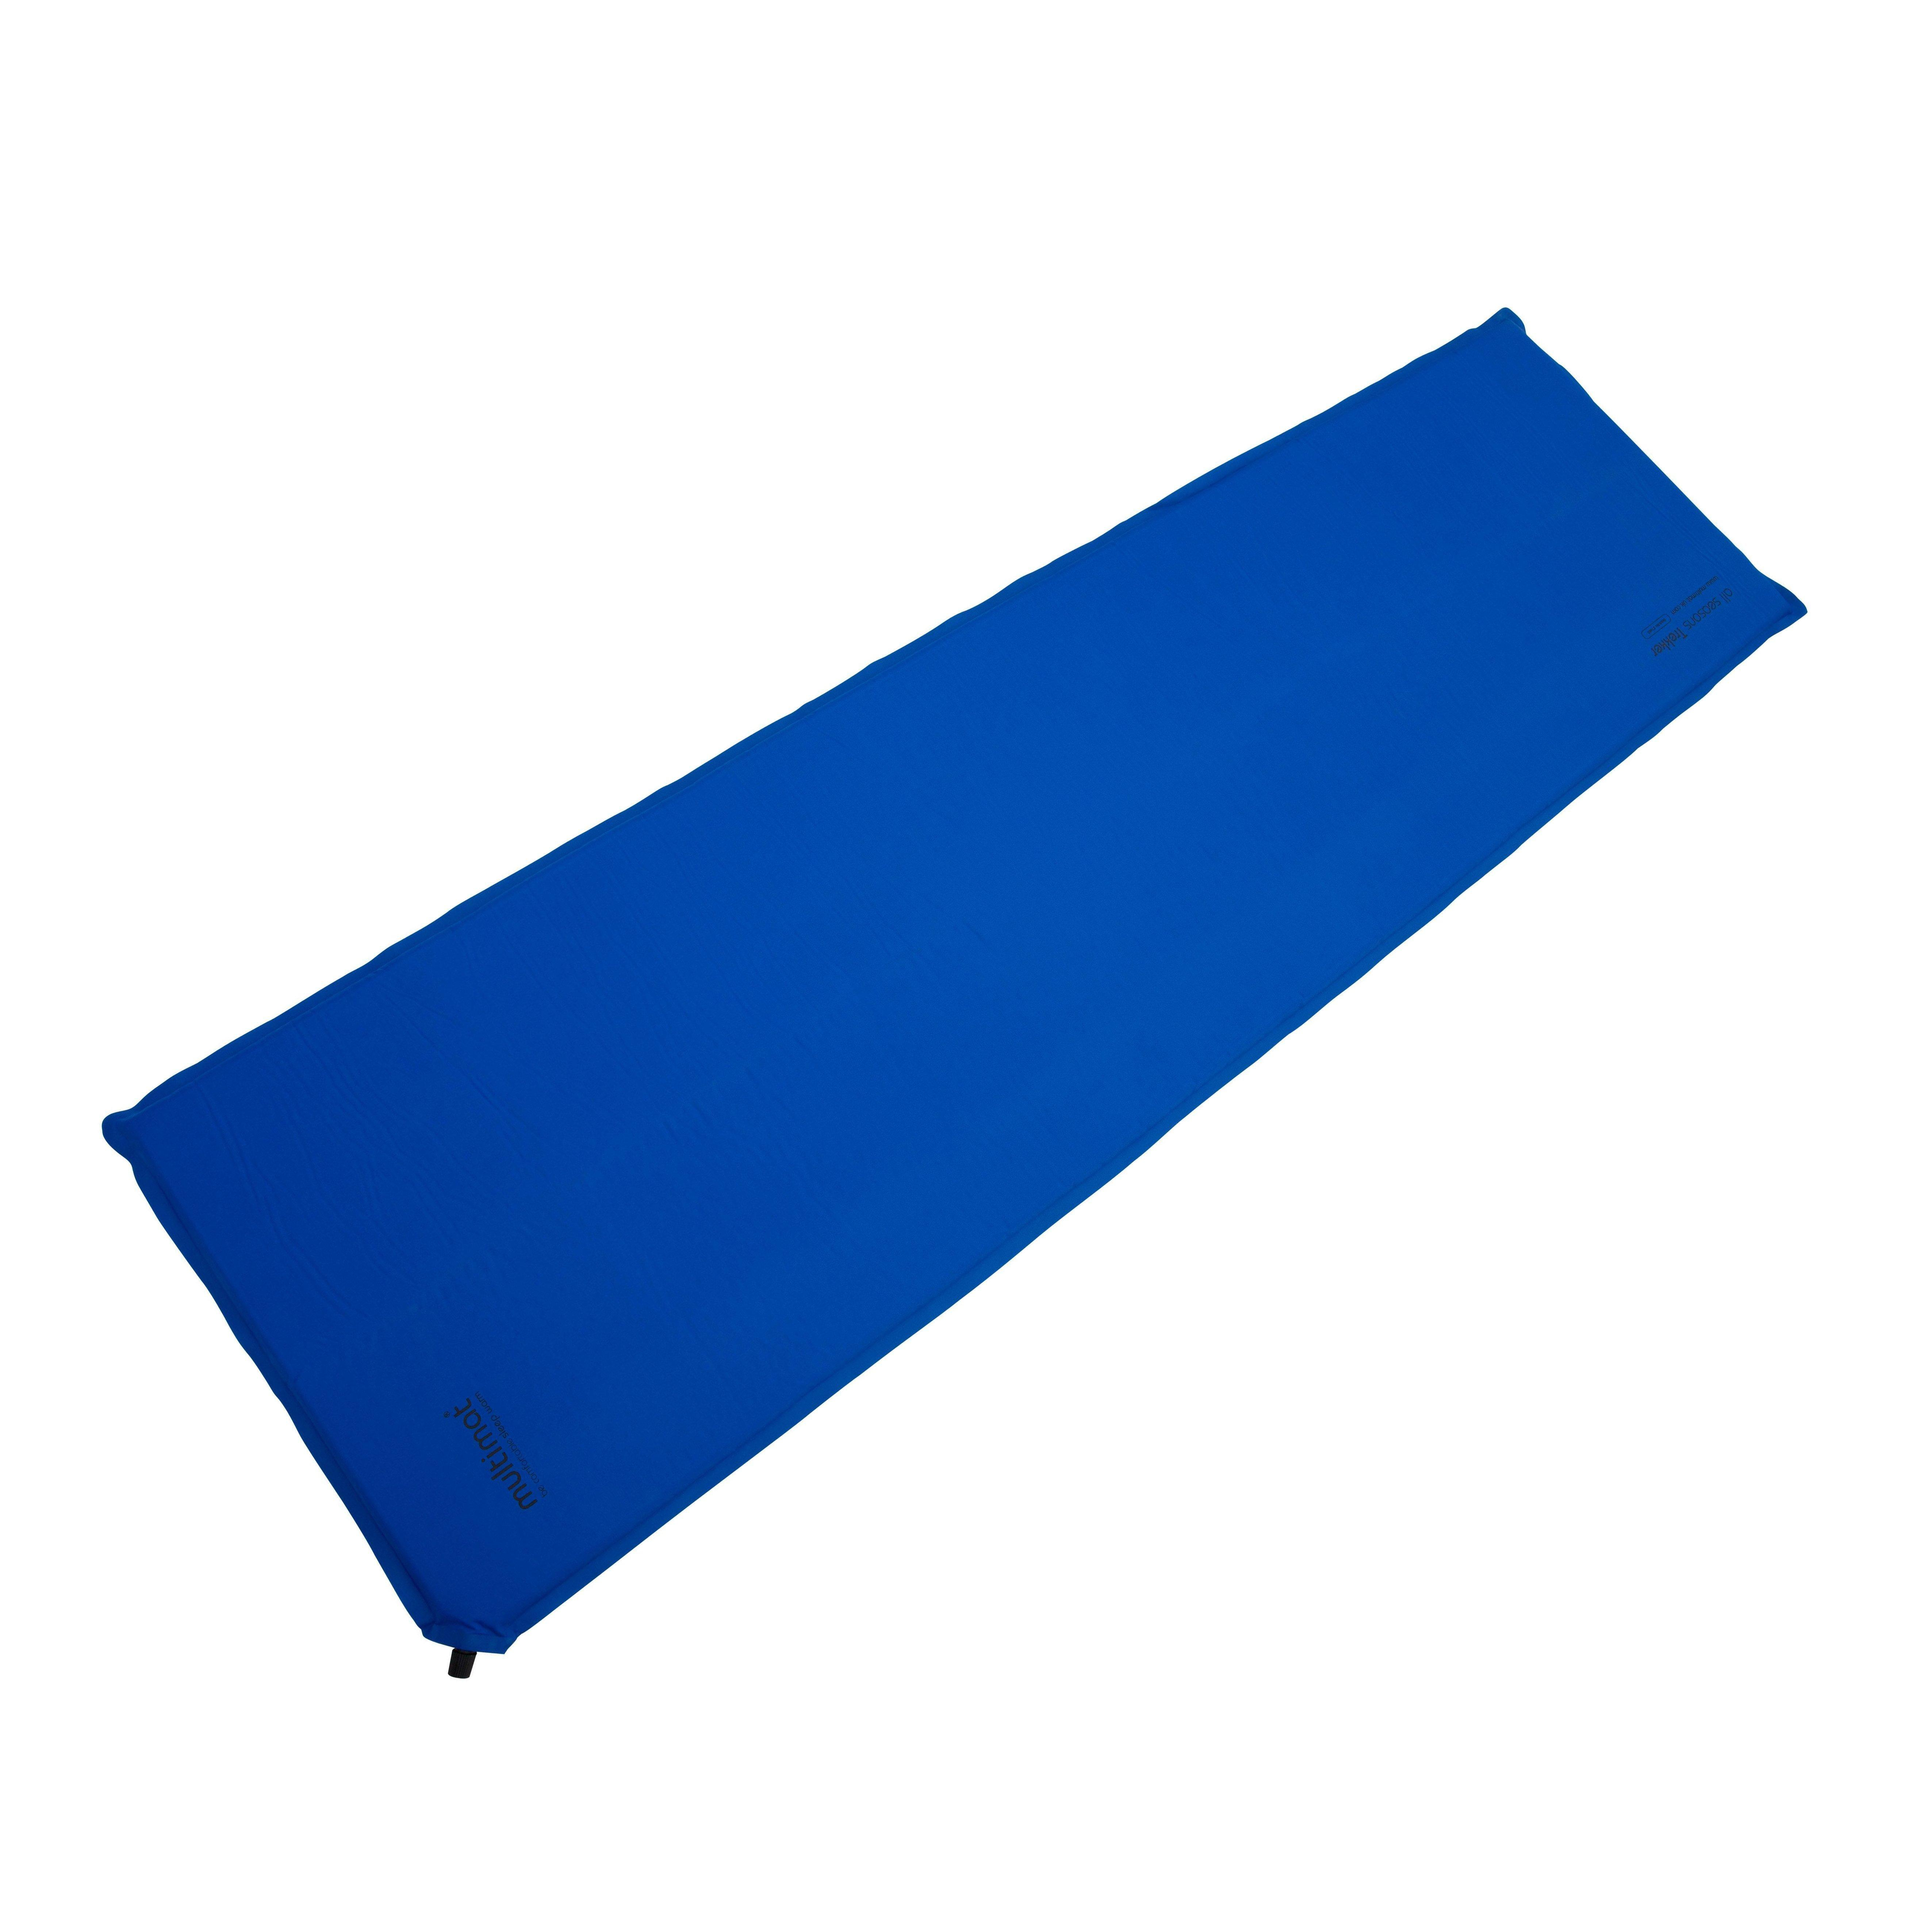 Multimat Trekker 25 Camping Mat, Blue